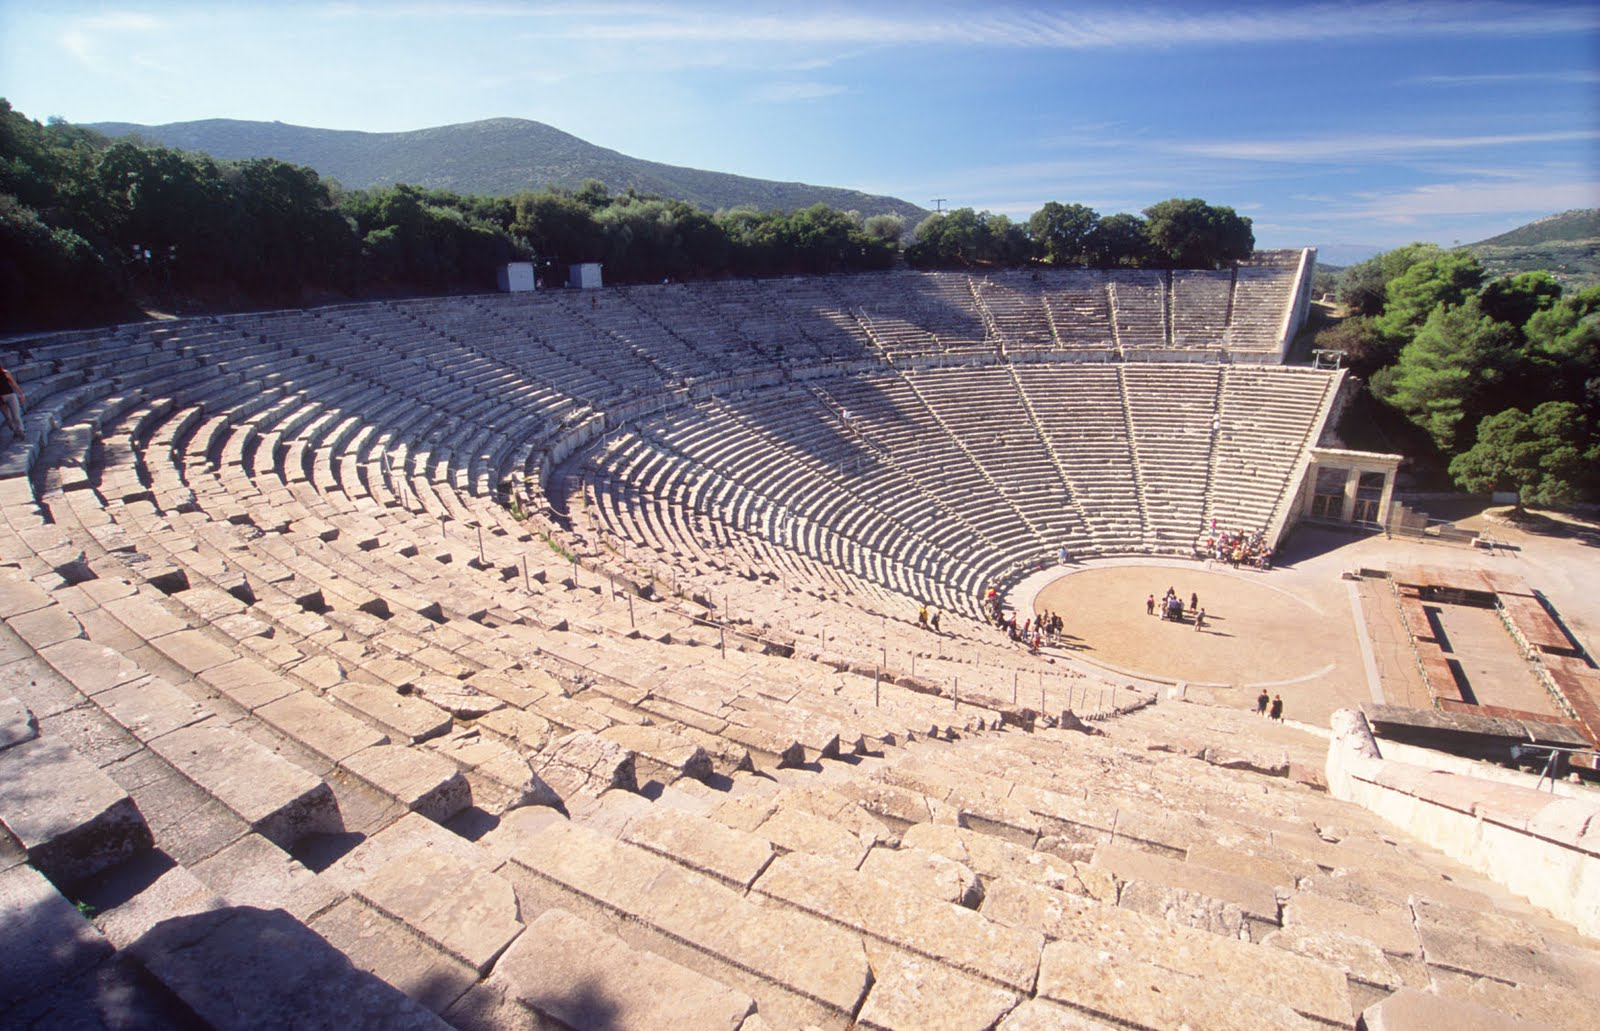 athens hightlights evans travel tours must see theatro epidauros